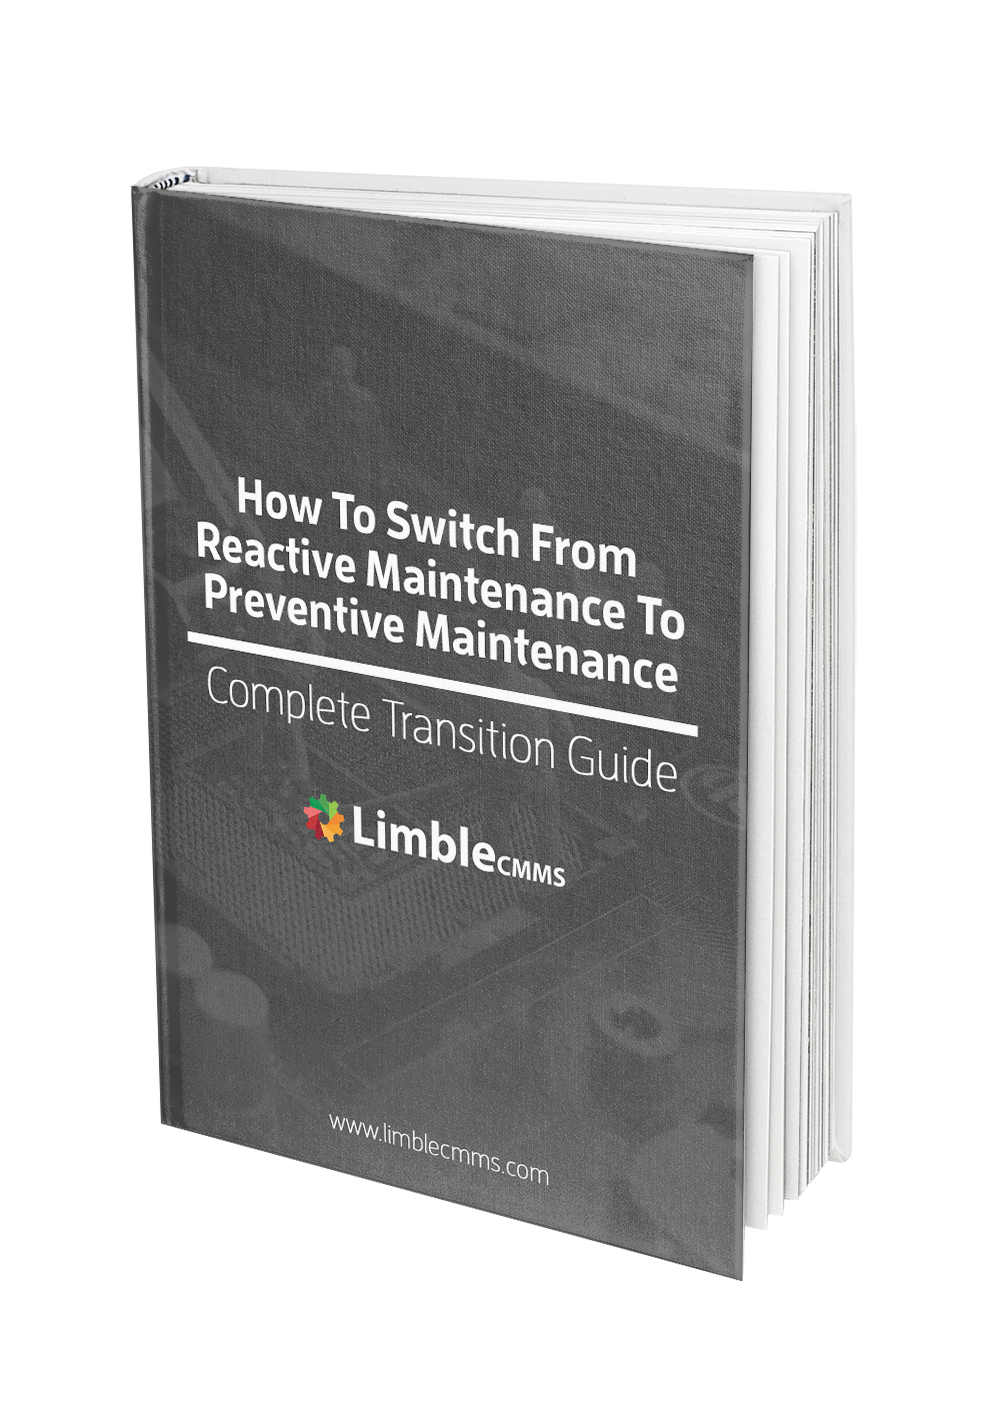 How to Switch from Reactive Maintenance to Preventive Maintenance